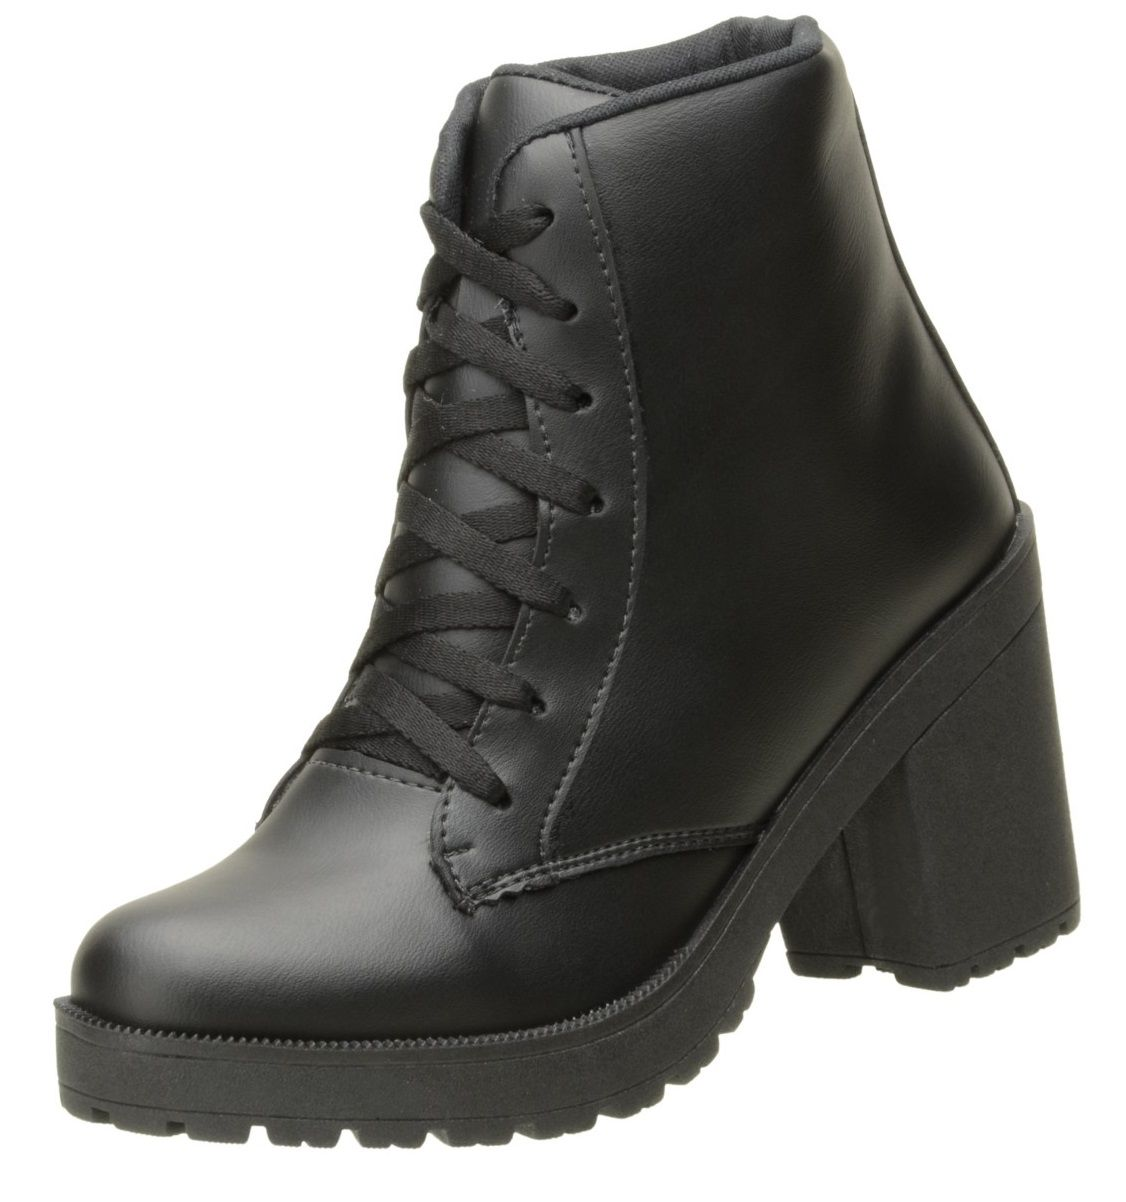 Bota Cano Curto Fosca Ankle Boot - 030 Cores